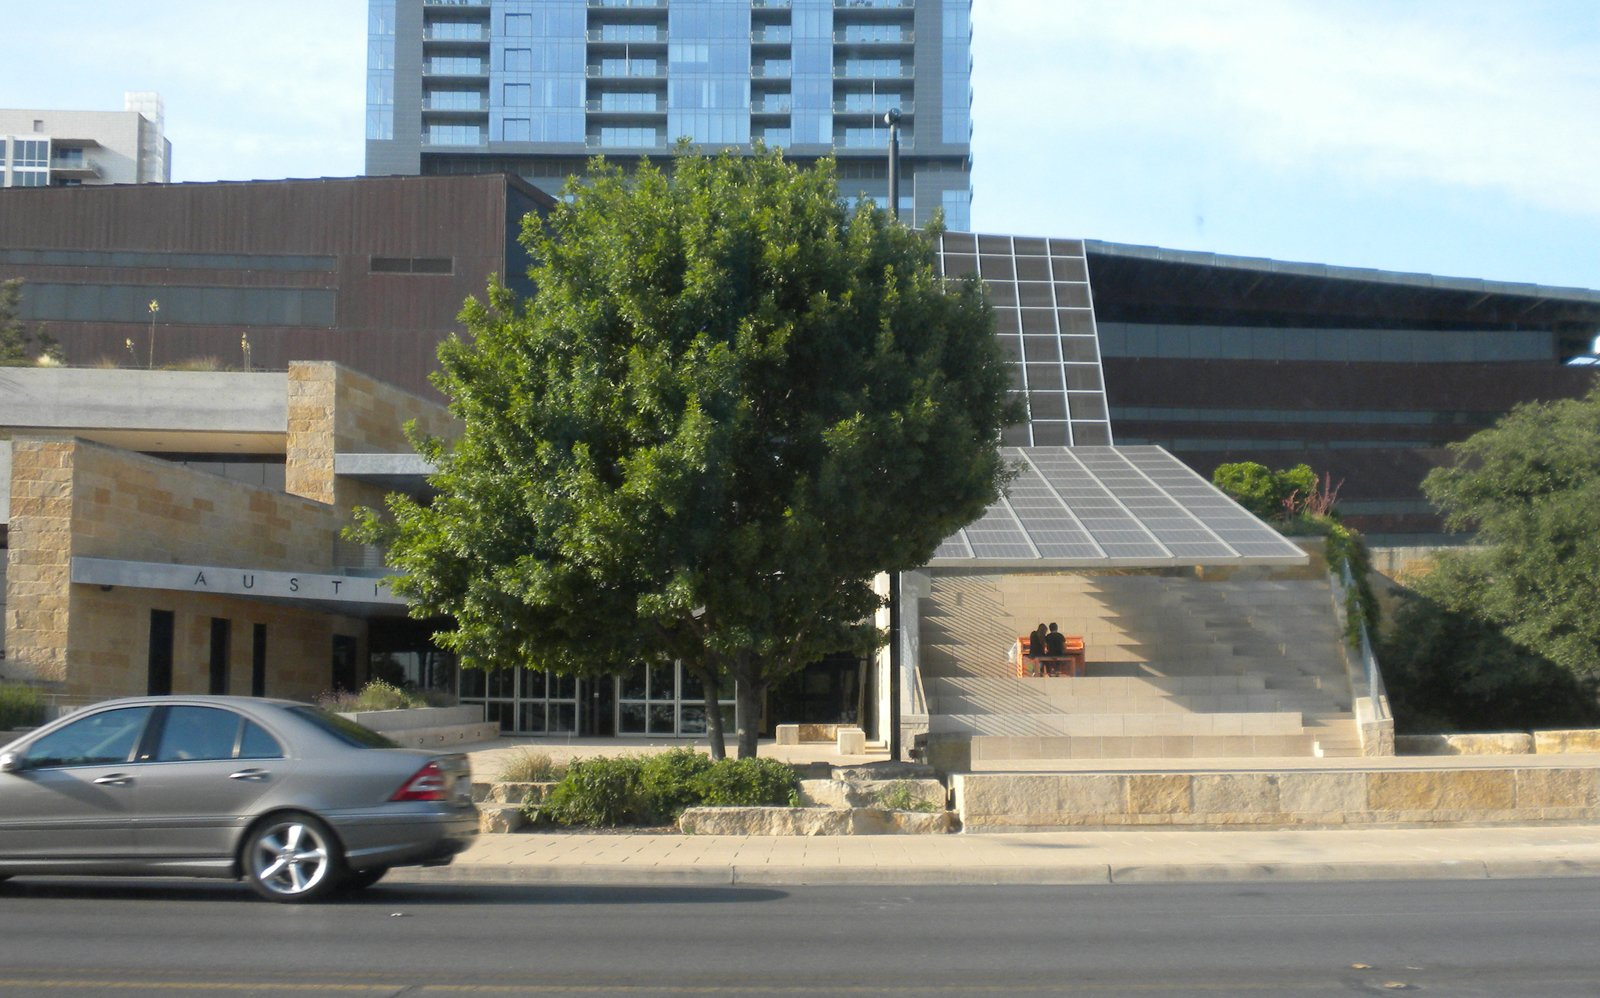 Though we didn't get a chance to stop, we did drive by Austin's City Hall, designed by Antoine Predock Architect PC, several times. In the summer, the exterior steps become auditorium seating for an afternoon concert series.  Three Days in Austin, Texas by Miyoko Ohtake